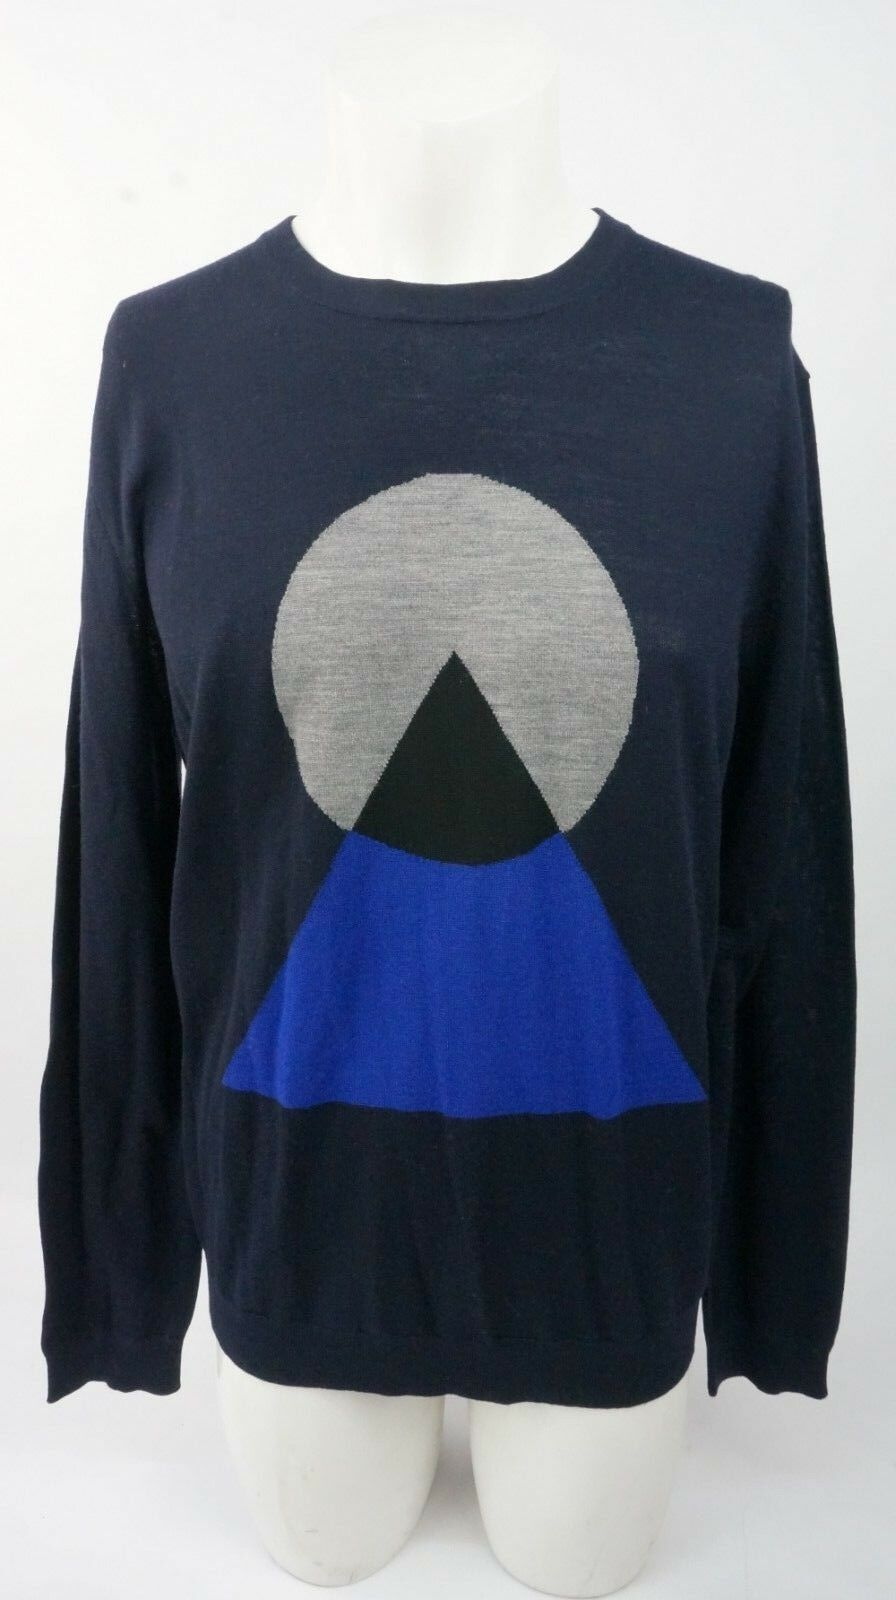 KENZO Men's Navy Merino Graphic Jumper Size L BNWTS RRP